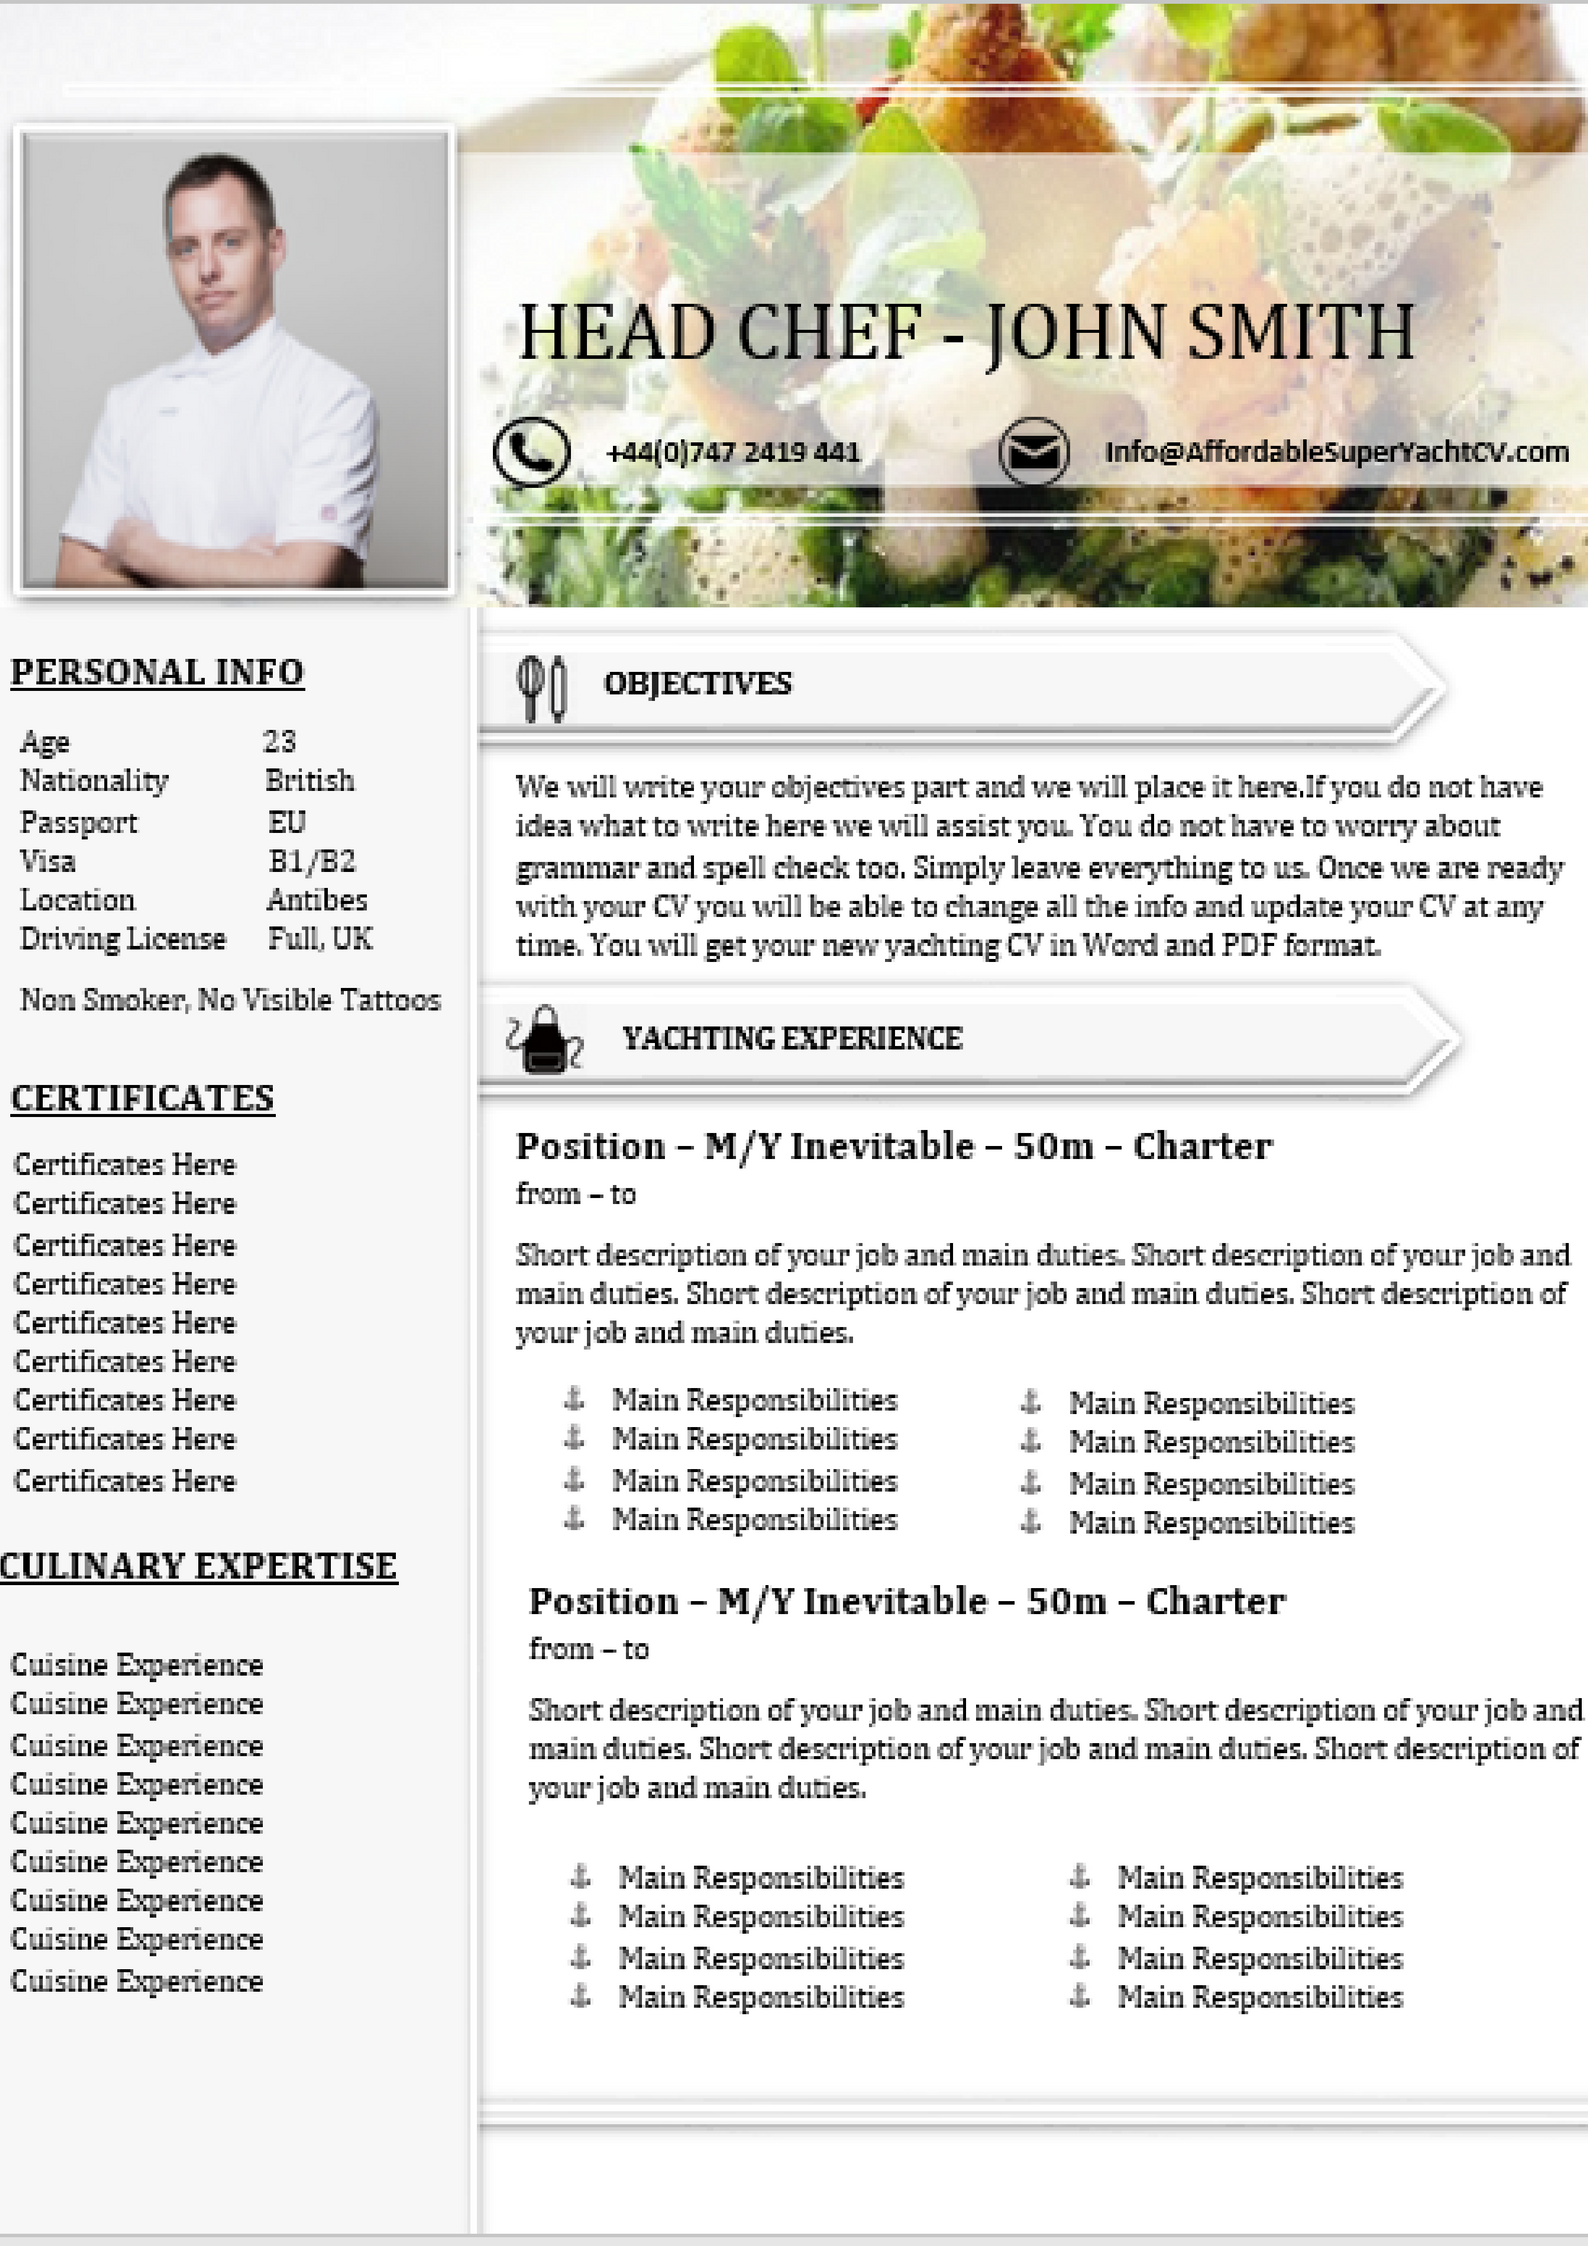 Chef Resume and CV Writing Service